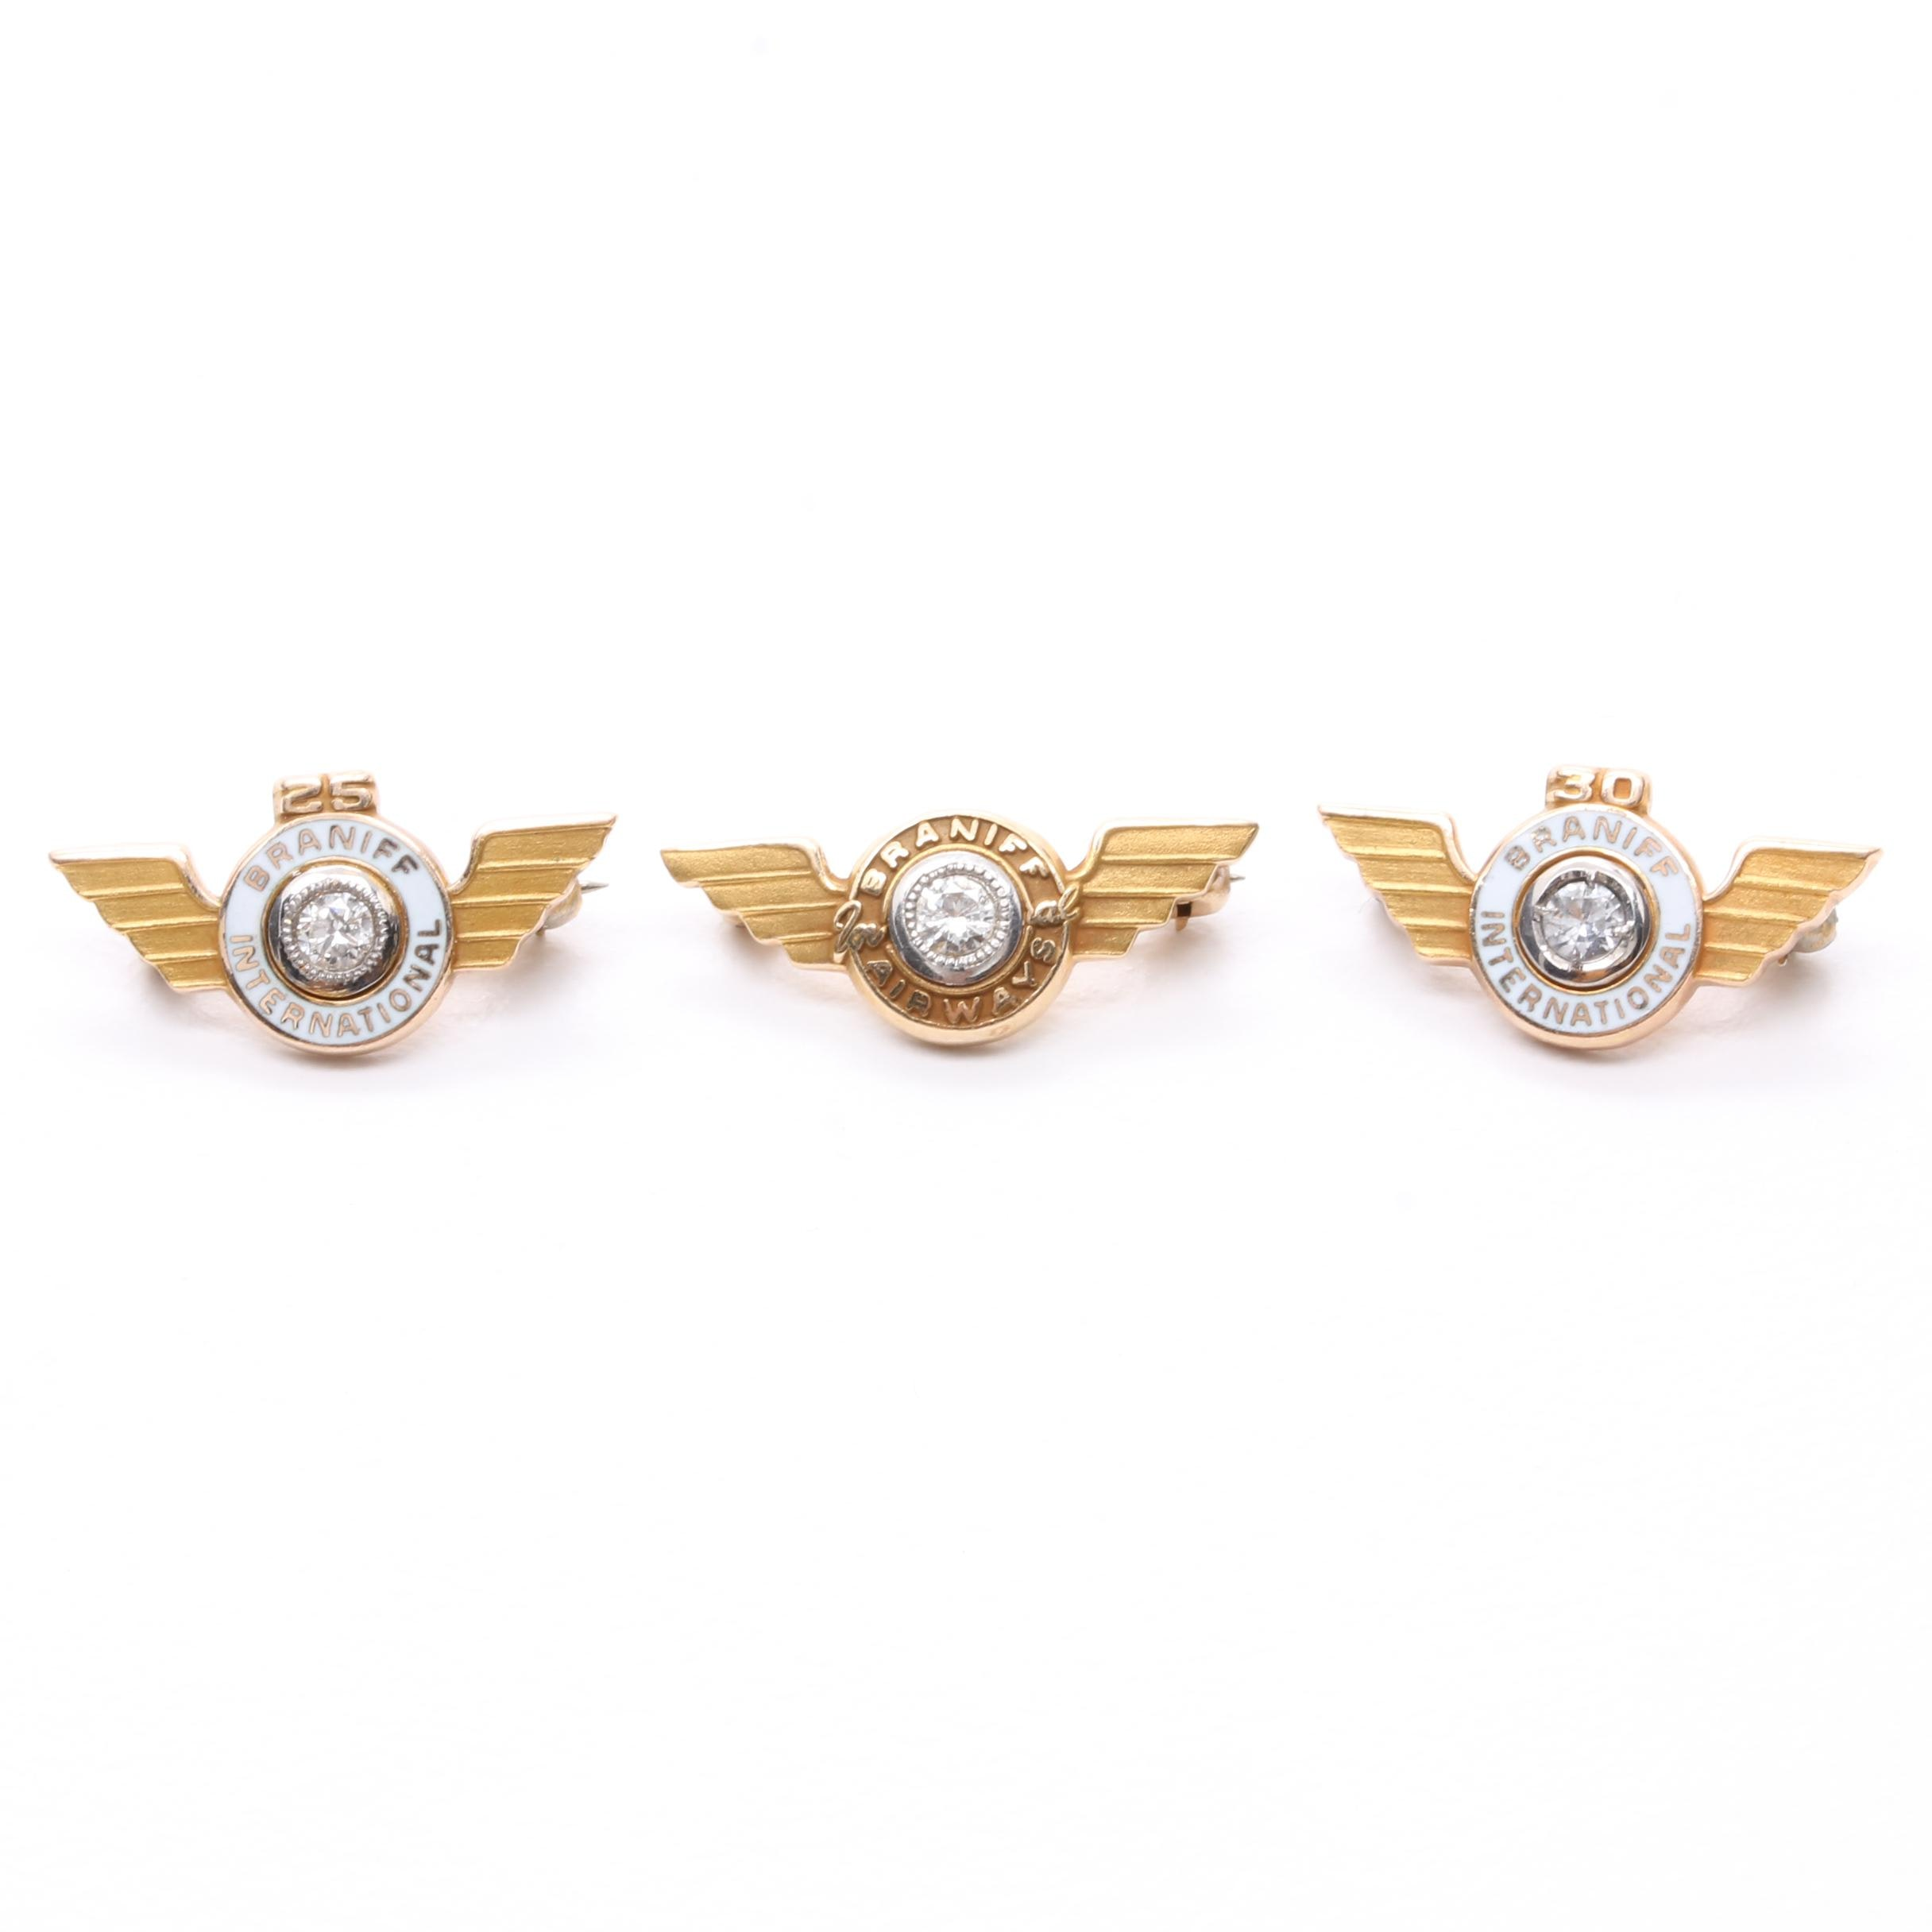 10K and 14K Yellow Gold Braniff Airways Diamond and Spinel Lapel Pins